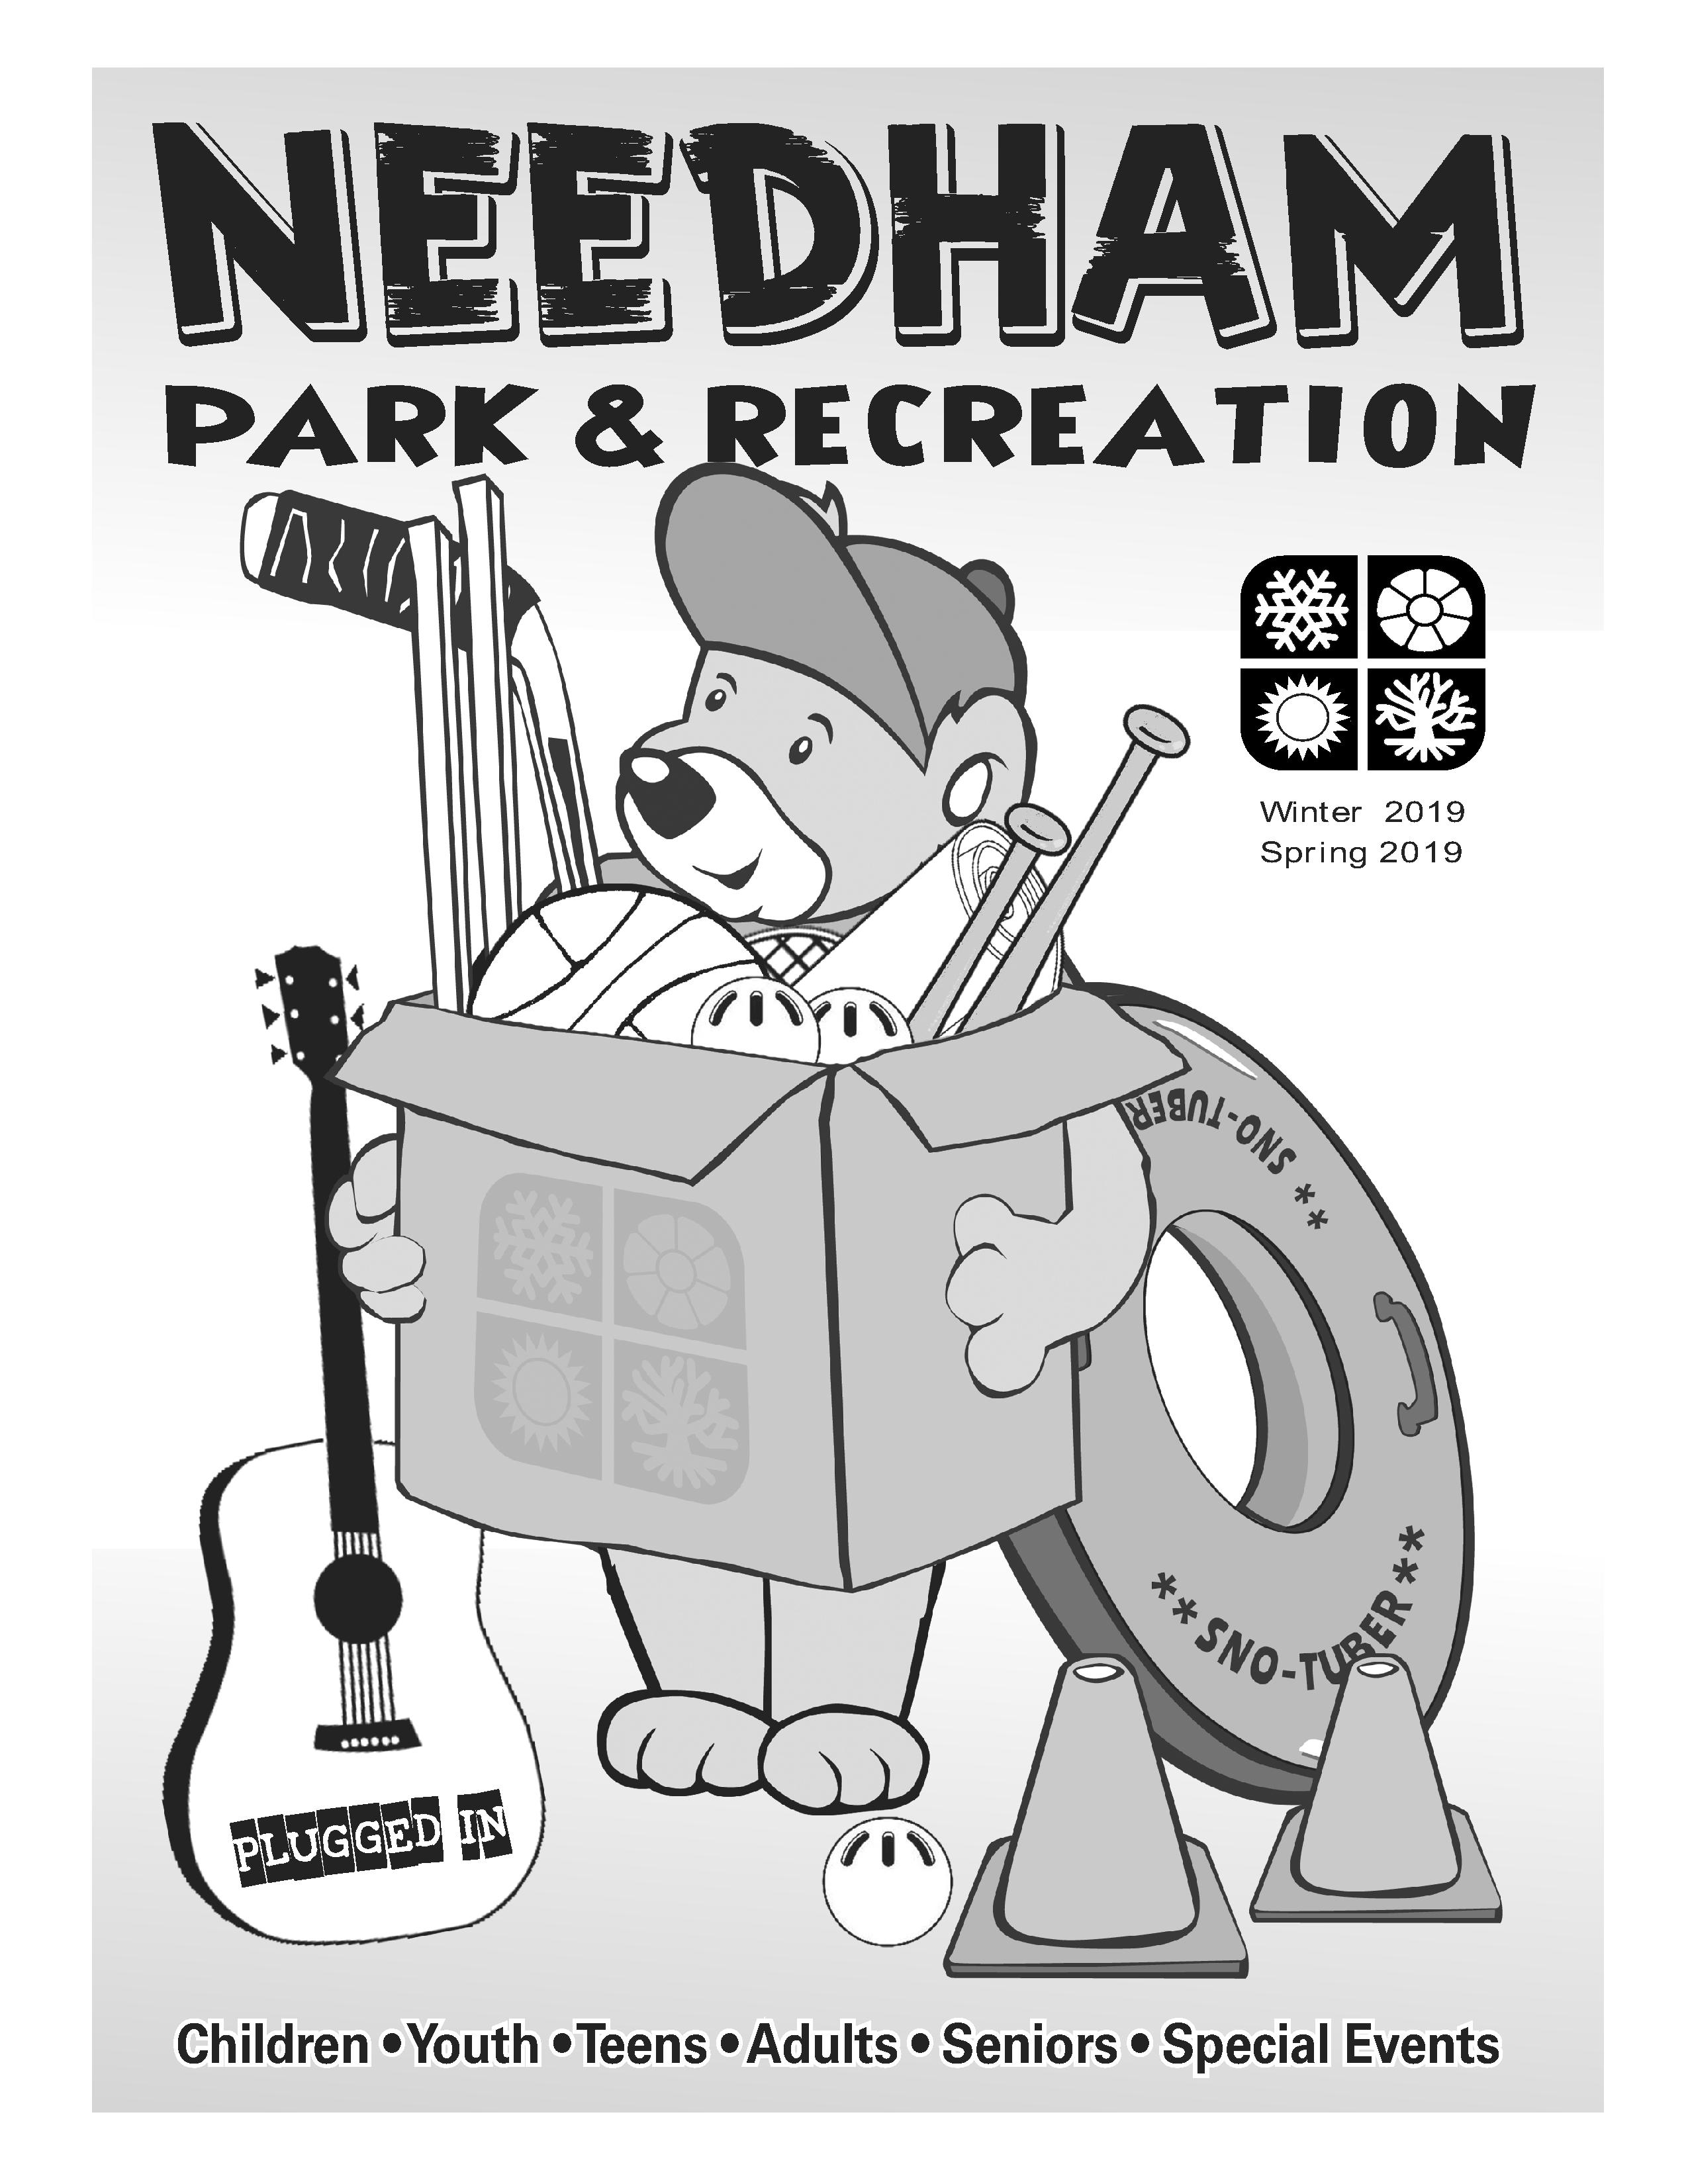 Image of a bear holding a box with equipment in it with the Park and Recreation Logo